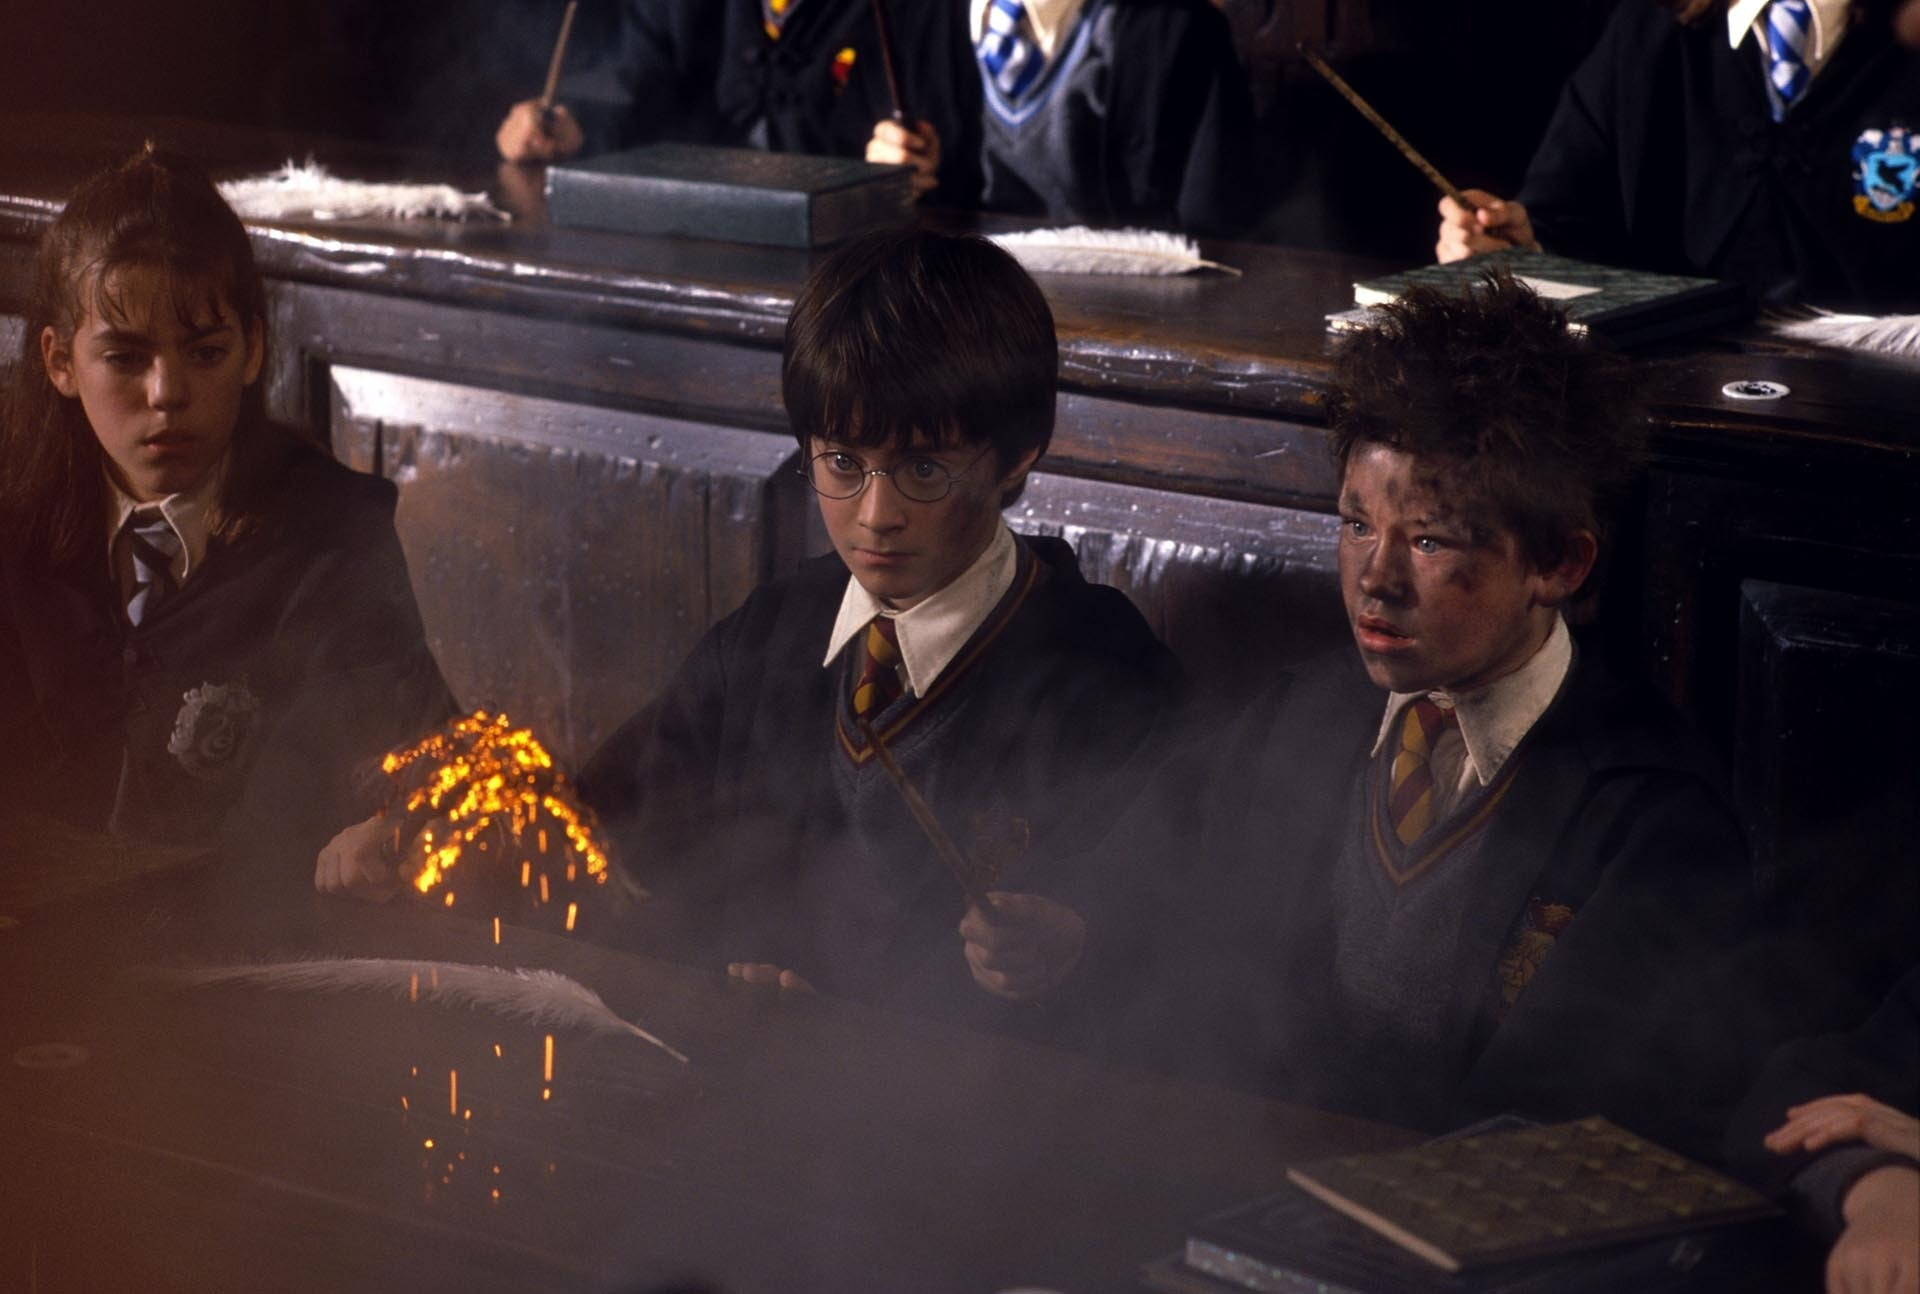 Harry Potter and the Philosopher's Stone - Image 11